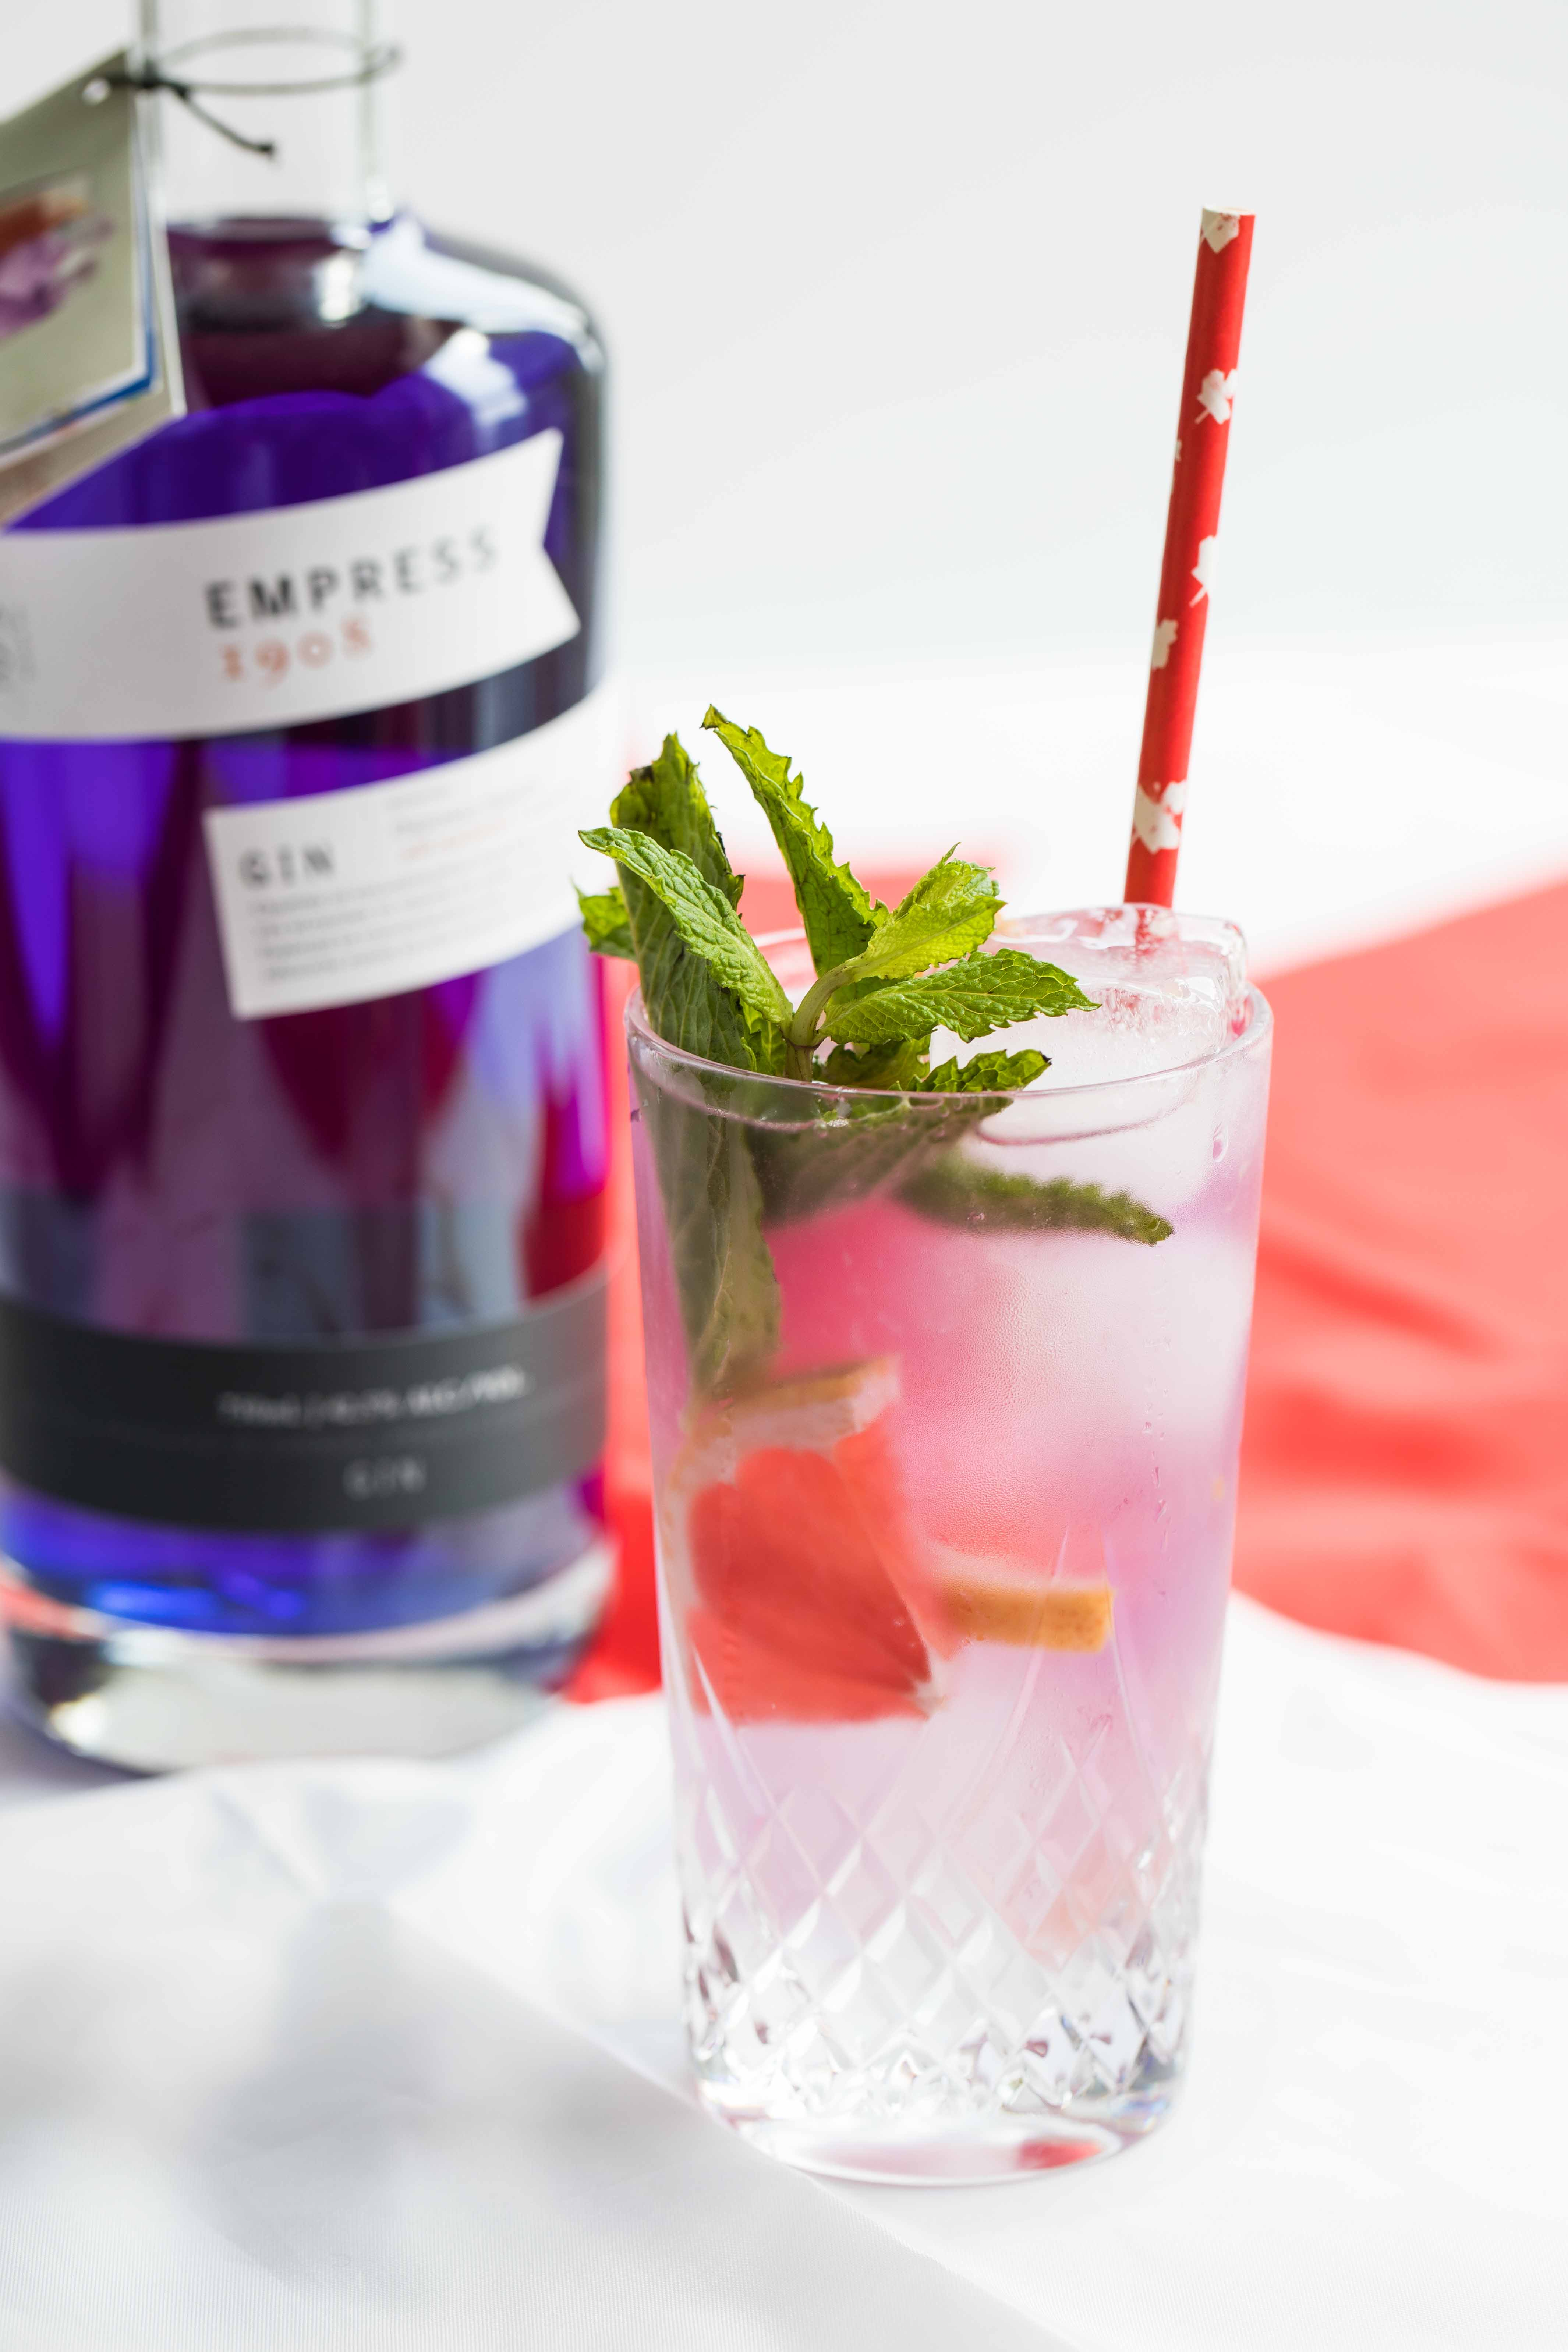 Exploring Canada with Cocktails: British Columbia's Empress Gin Grapefruit Cider Cocktail